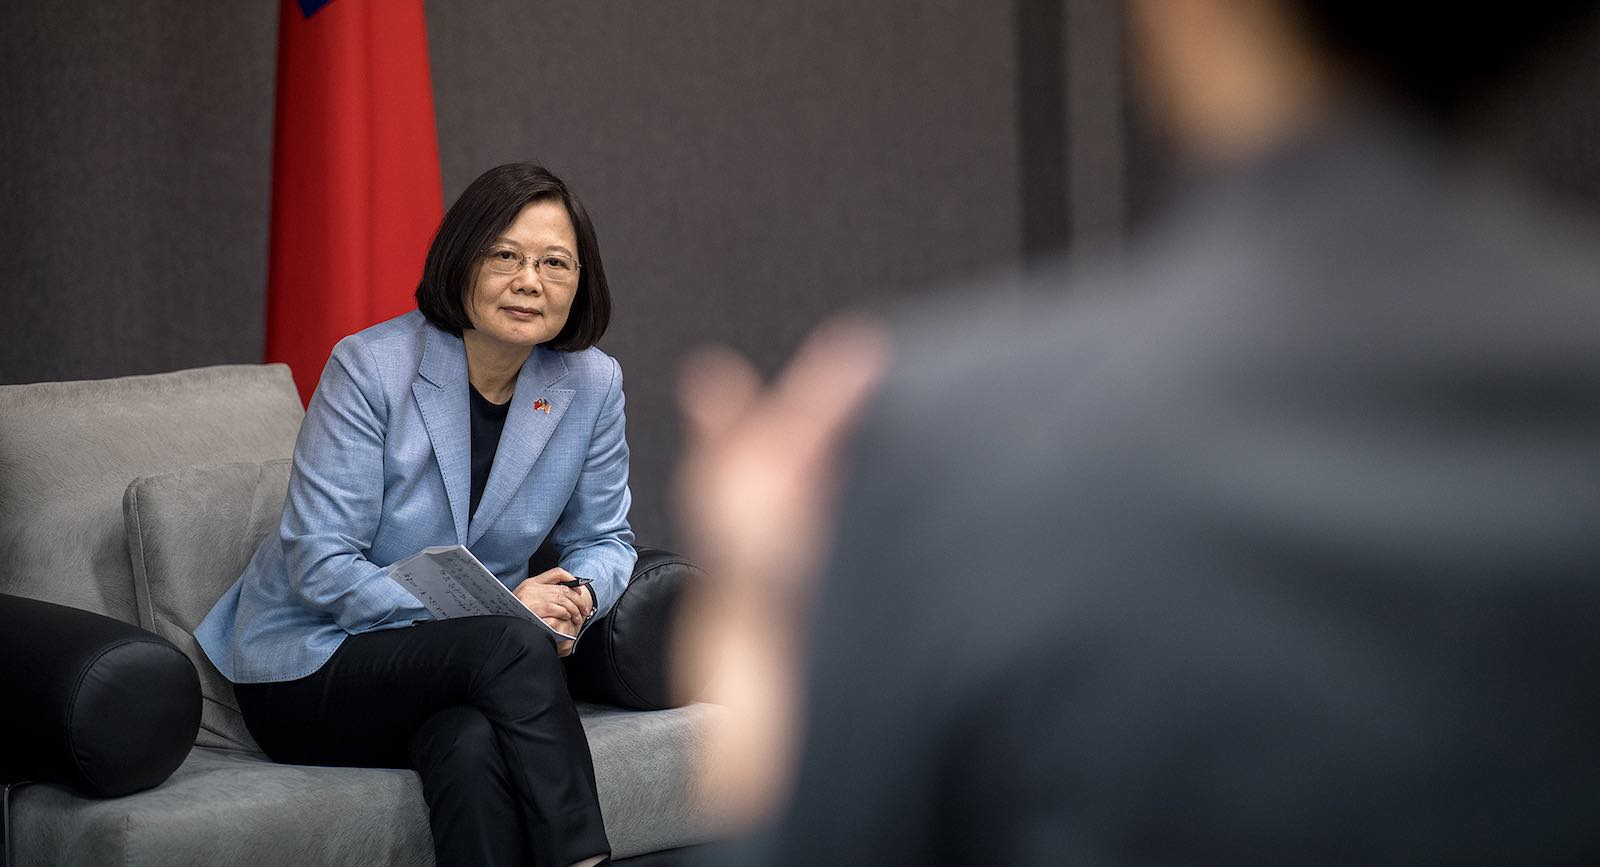 Taiwan President Tsai Ing-wen (Photo: Taiwan Presidential office/Flickr)